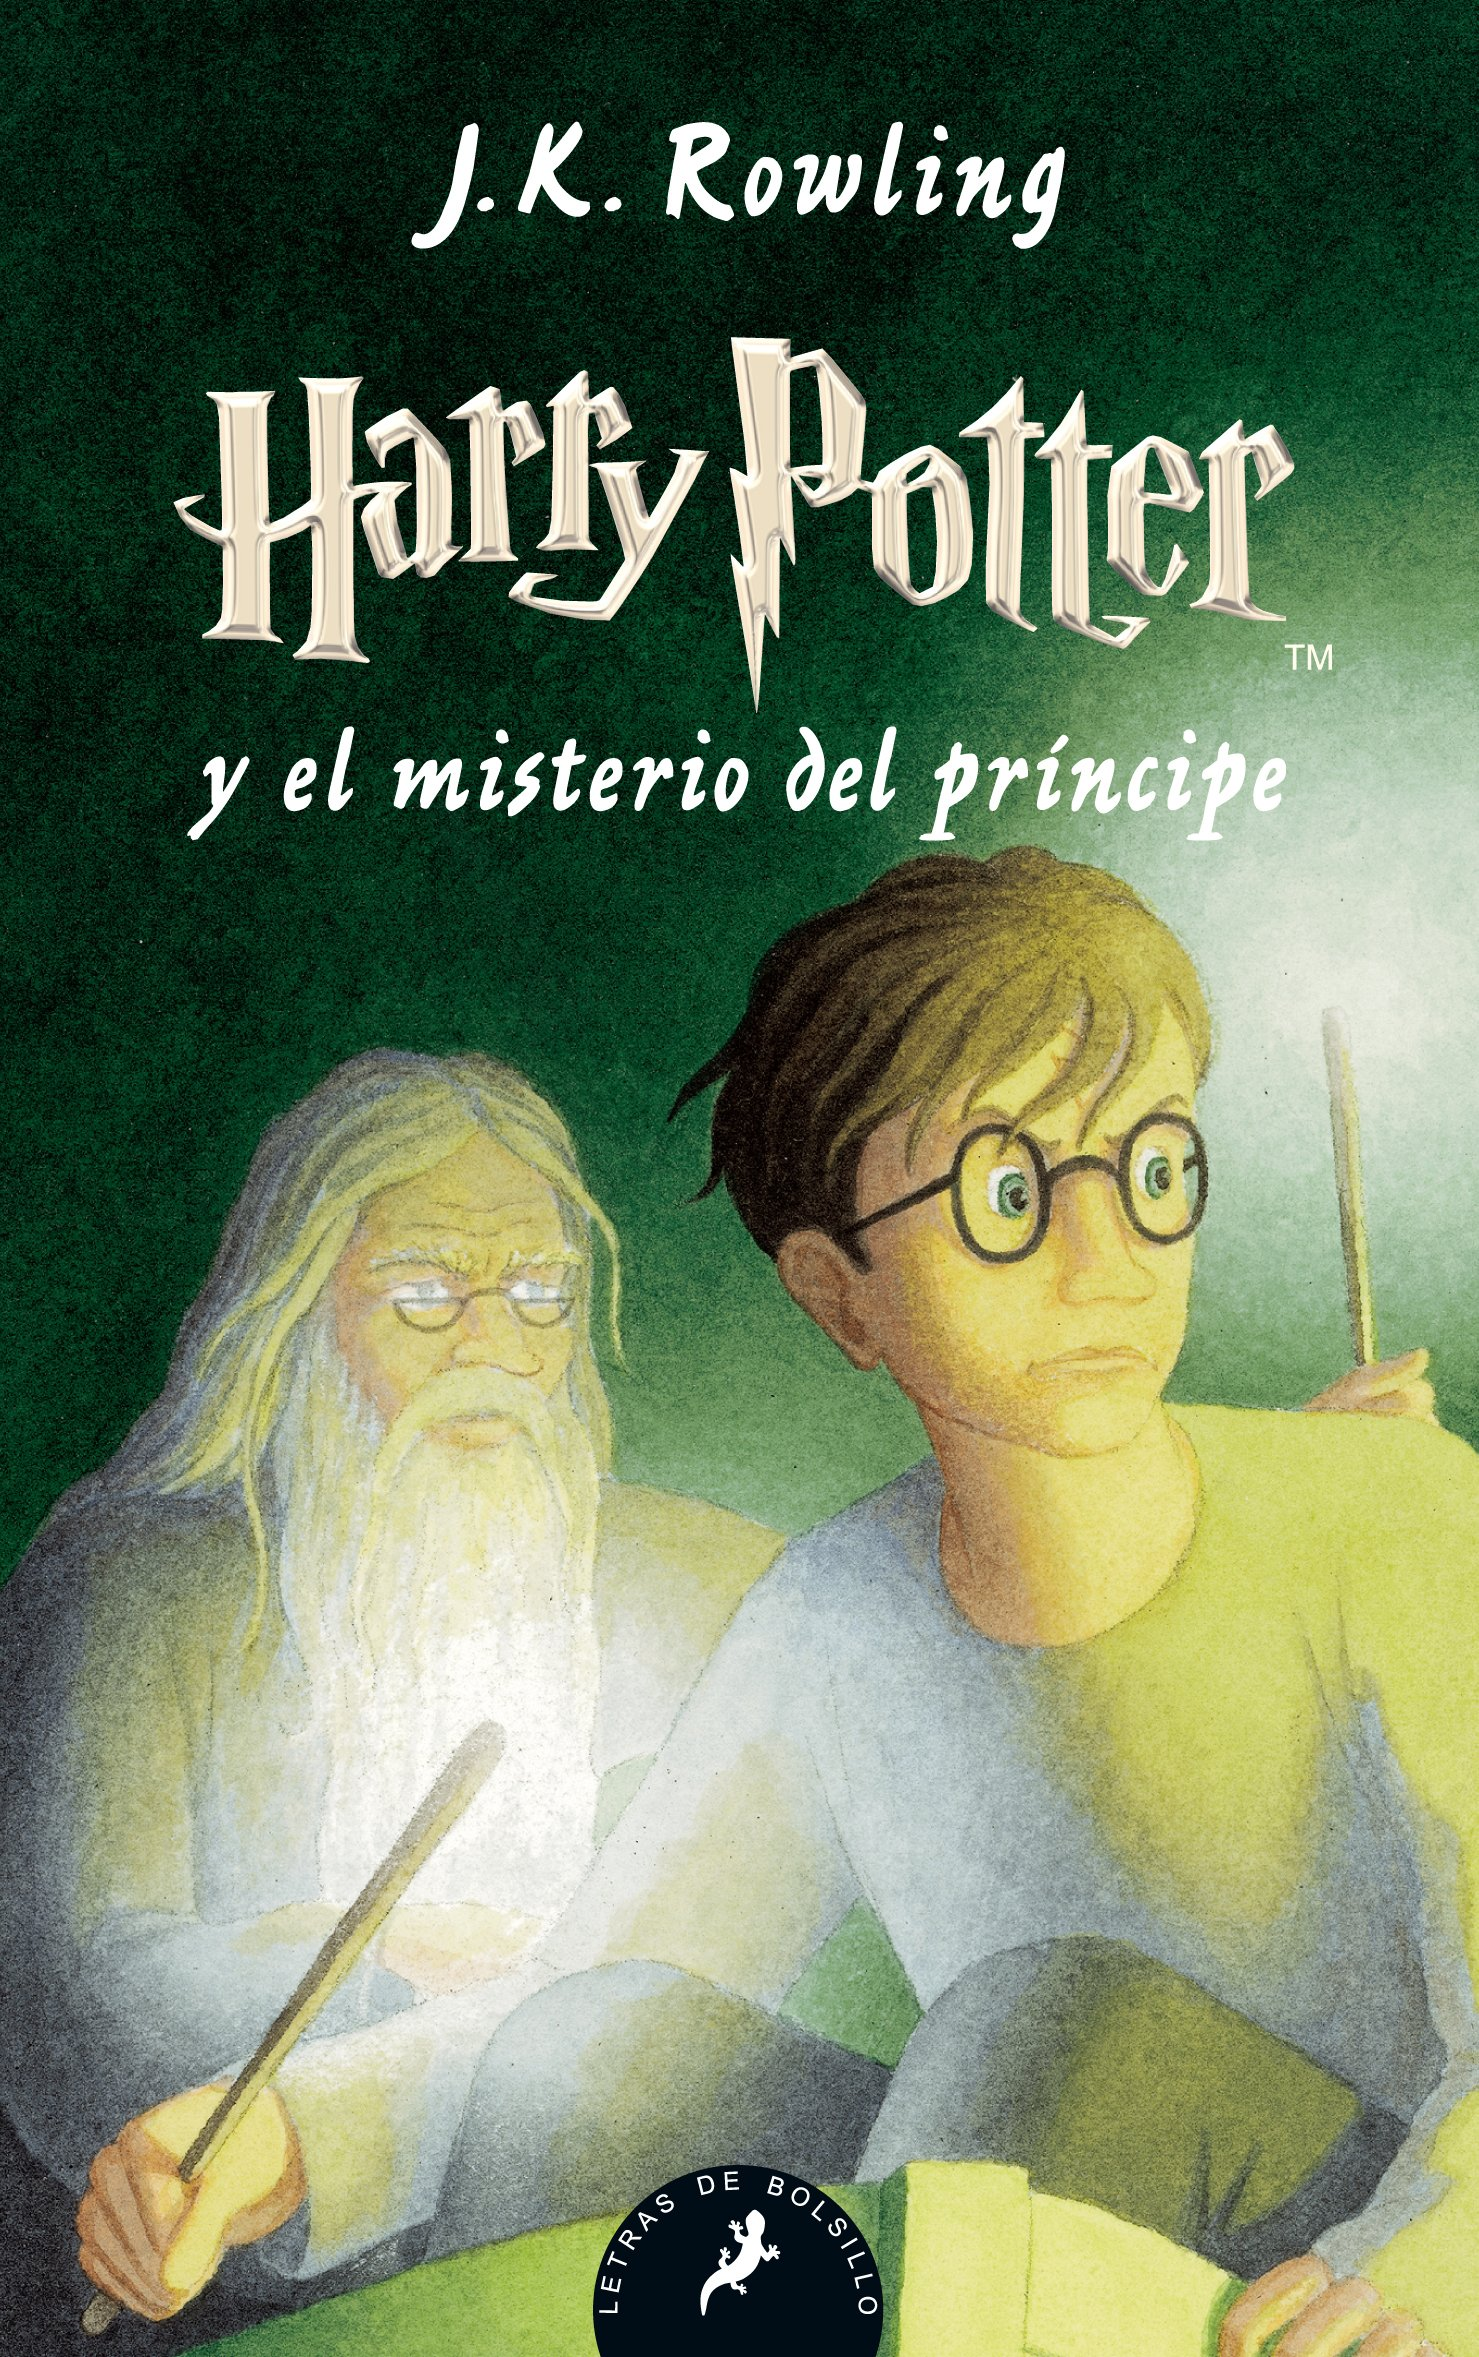 Harry Potter y el misterio del príncipe (Letras de Bolsillo) Tapa blanda – 8 jun 2011 J.K. Rowling Salamandra 8498383633 FICTION / General